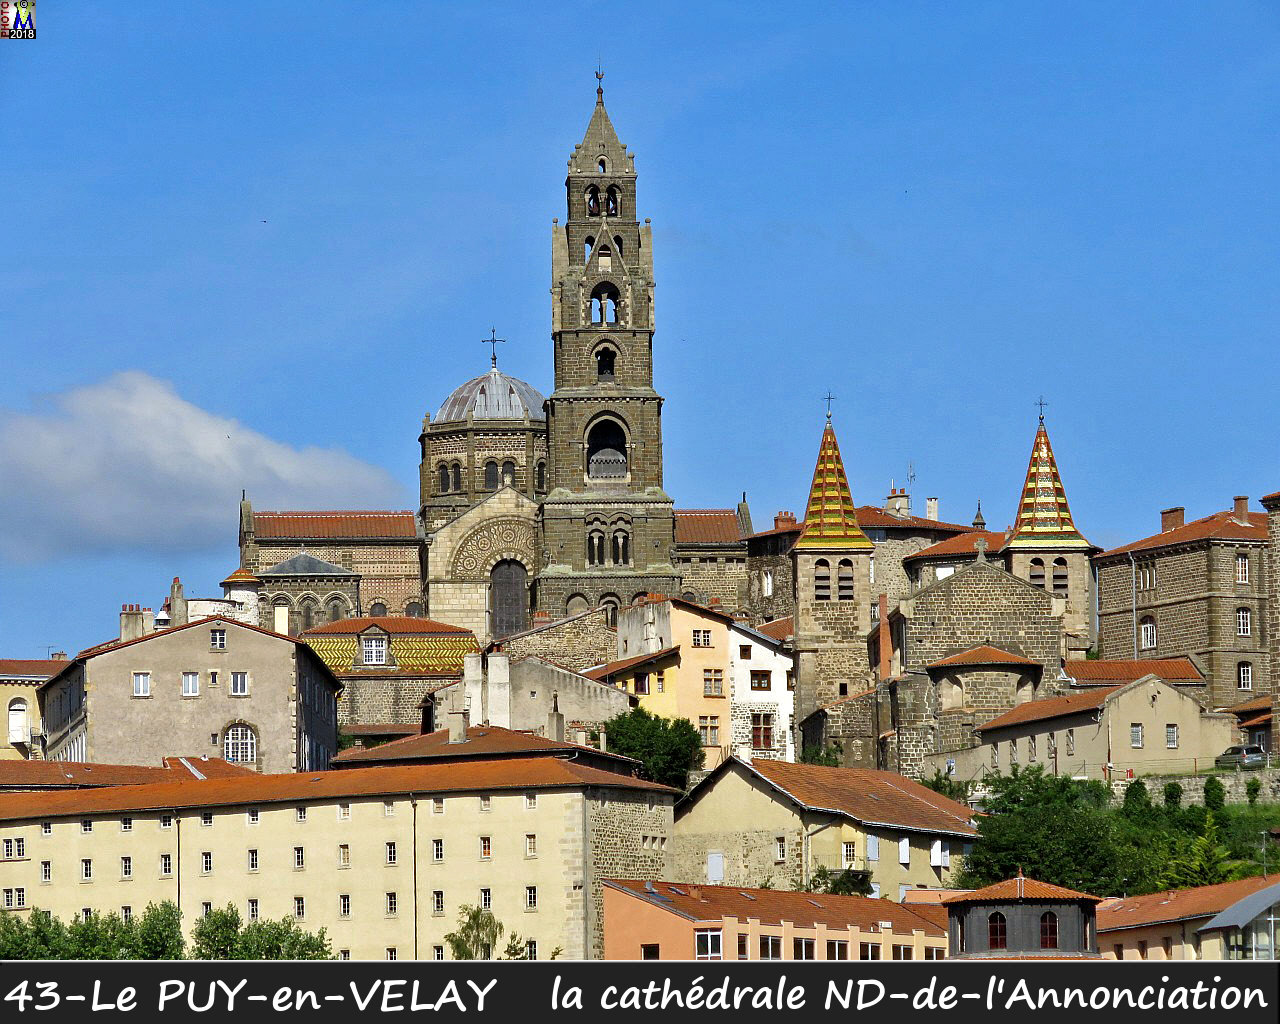 43PUY-EN-VELAY_cathedrale_104.jpg